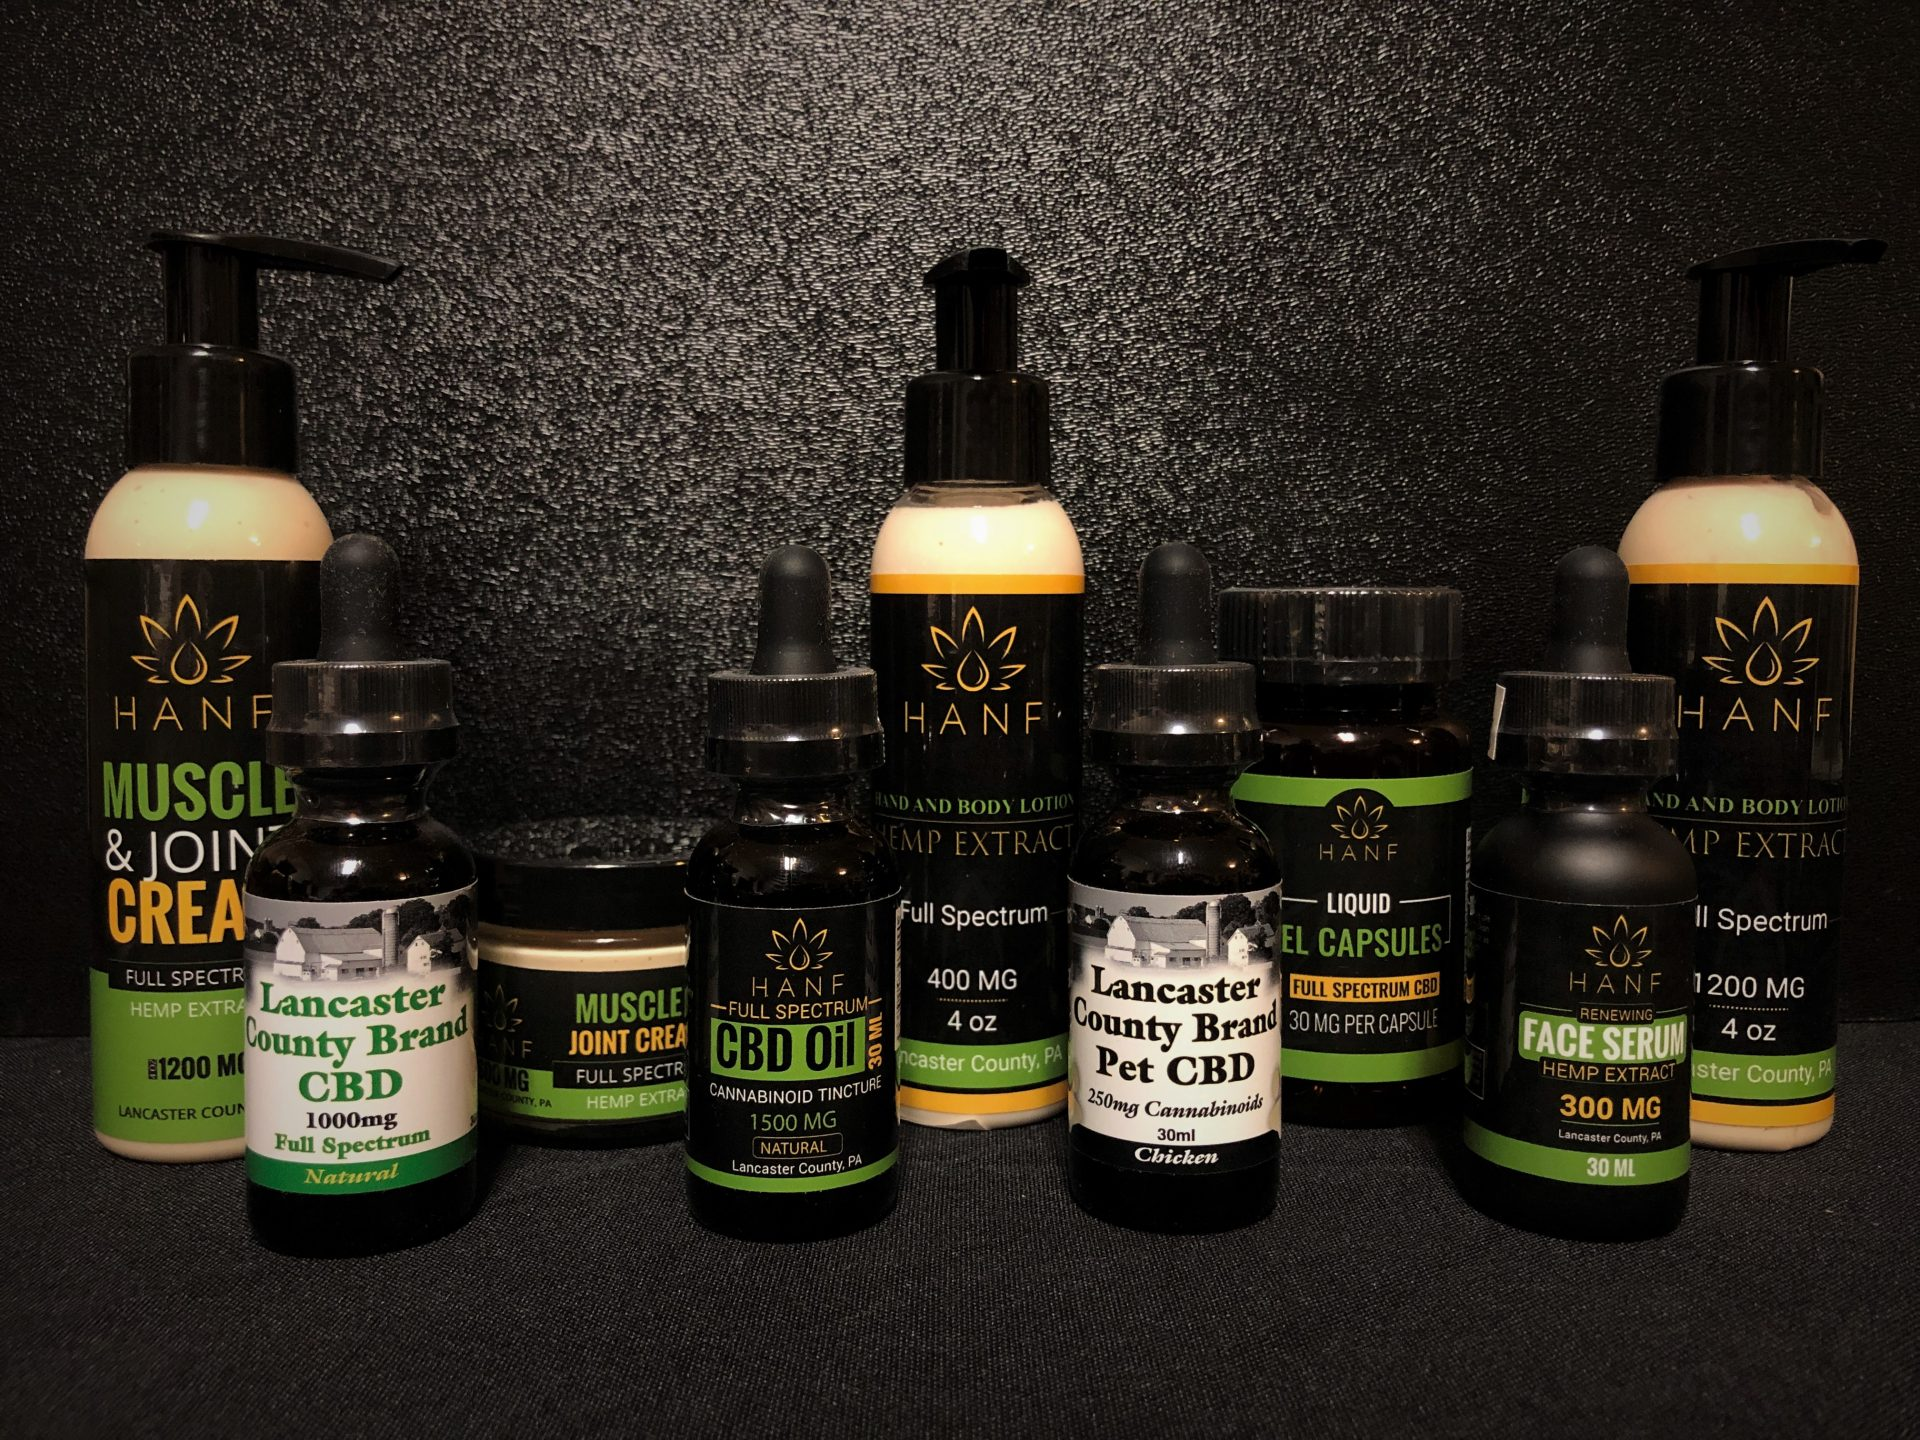 display of Lancaster County and Hanf CBD products